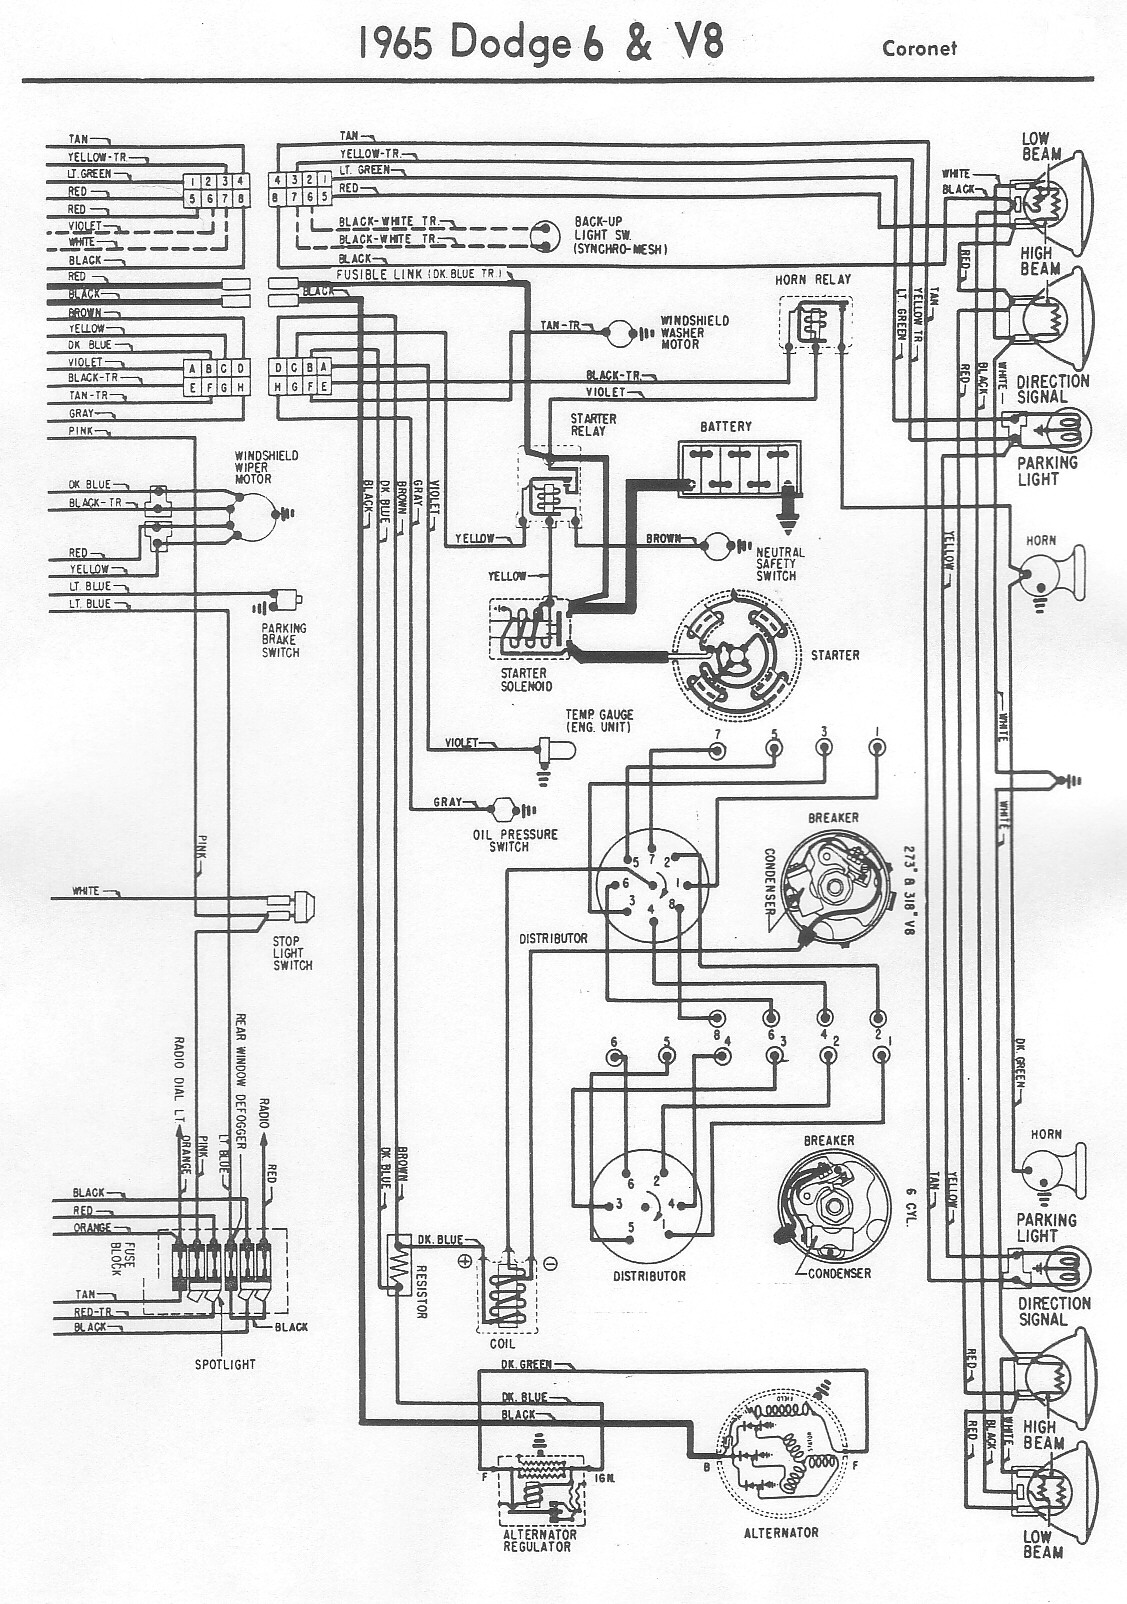 small resolution of 1966 dodge wiring diagram wiring diagram blogs 2012 dodge charger pcm wiring diagram 1966 dodge wiring